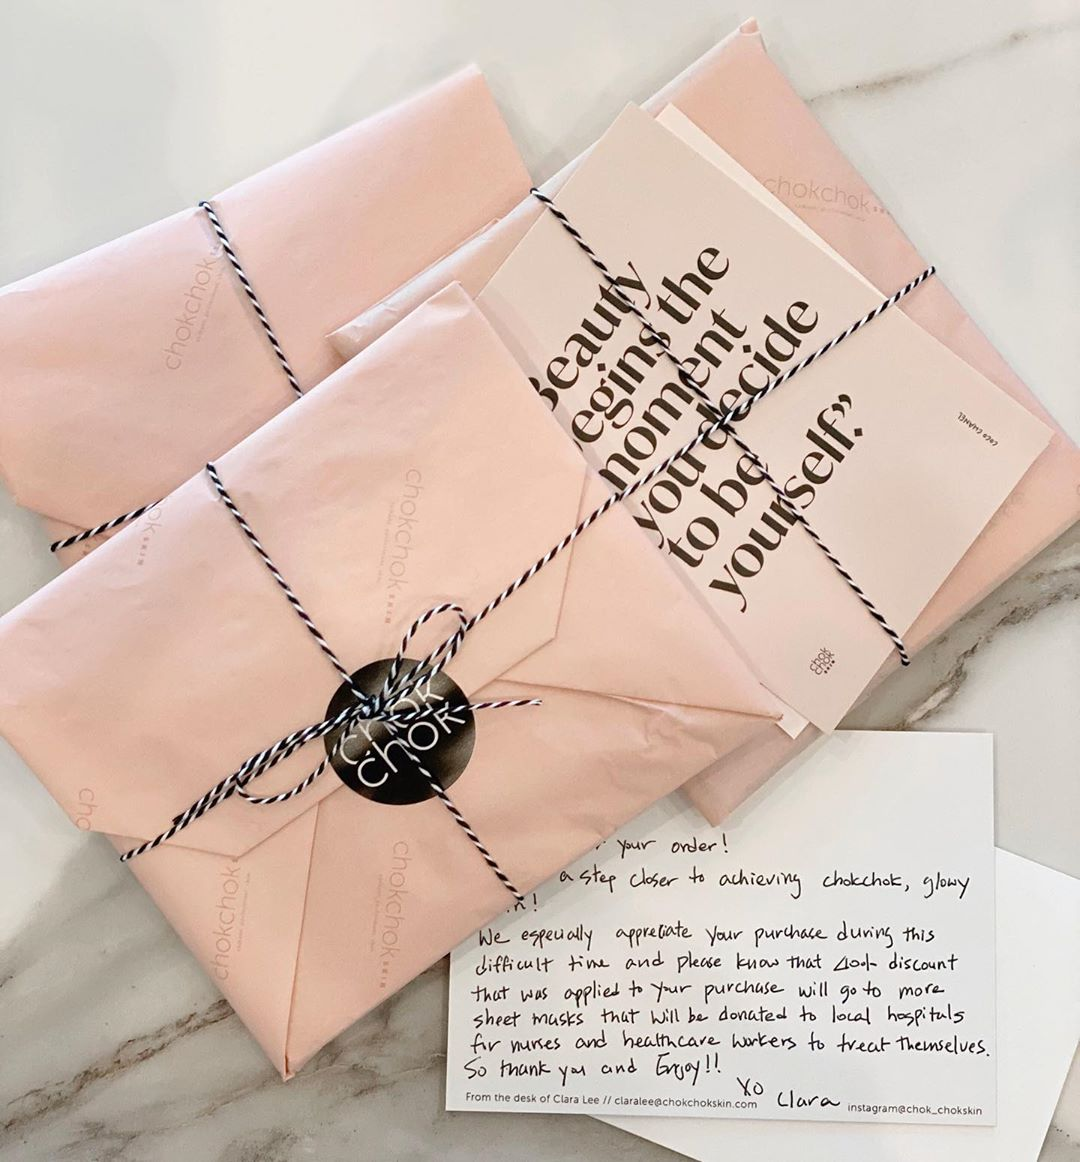 Pink tissue paper packaging